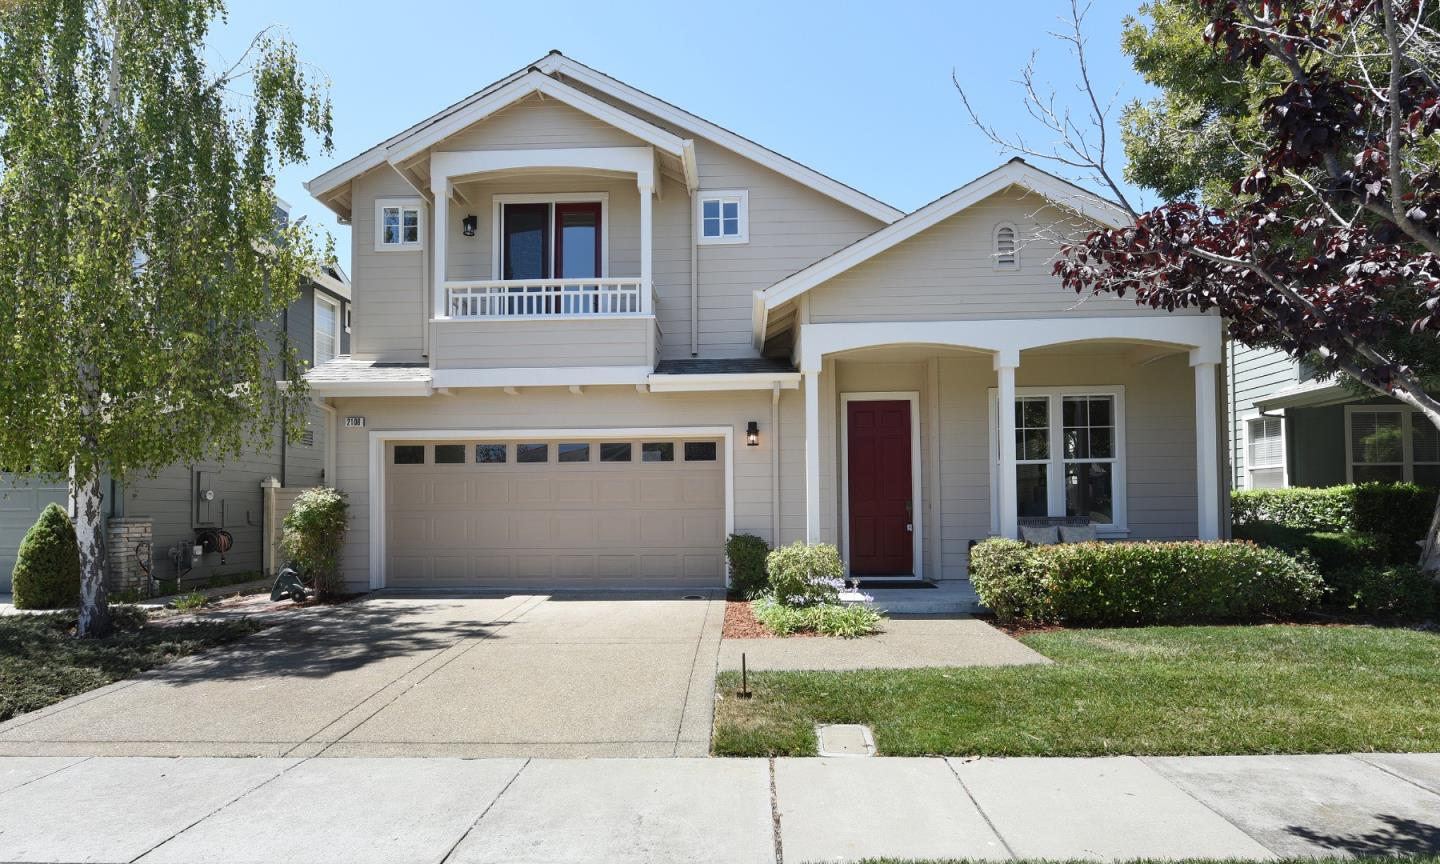 2108 Gossamer Avenue, REDWOOD SHORES, CA 94065